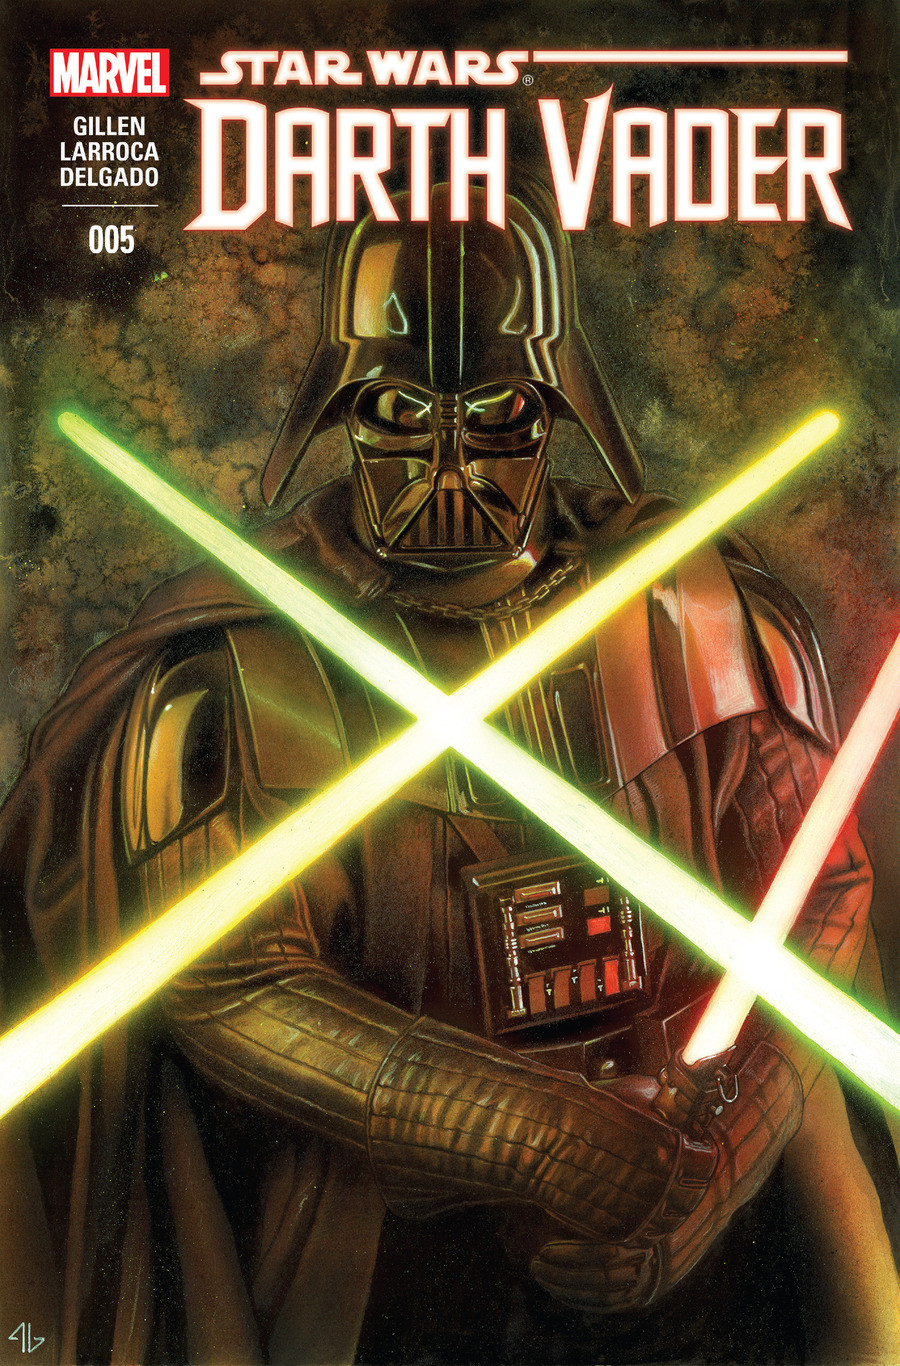 Star Wars Darth Vader issue 5. join list: StarWarsDarthVader (283 subs)Mention History The fifth issue of the canon Darth Vader comic series If you havent read